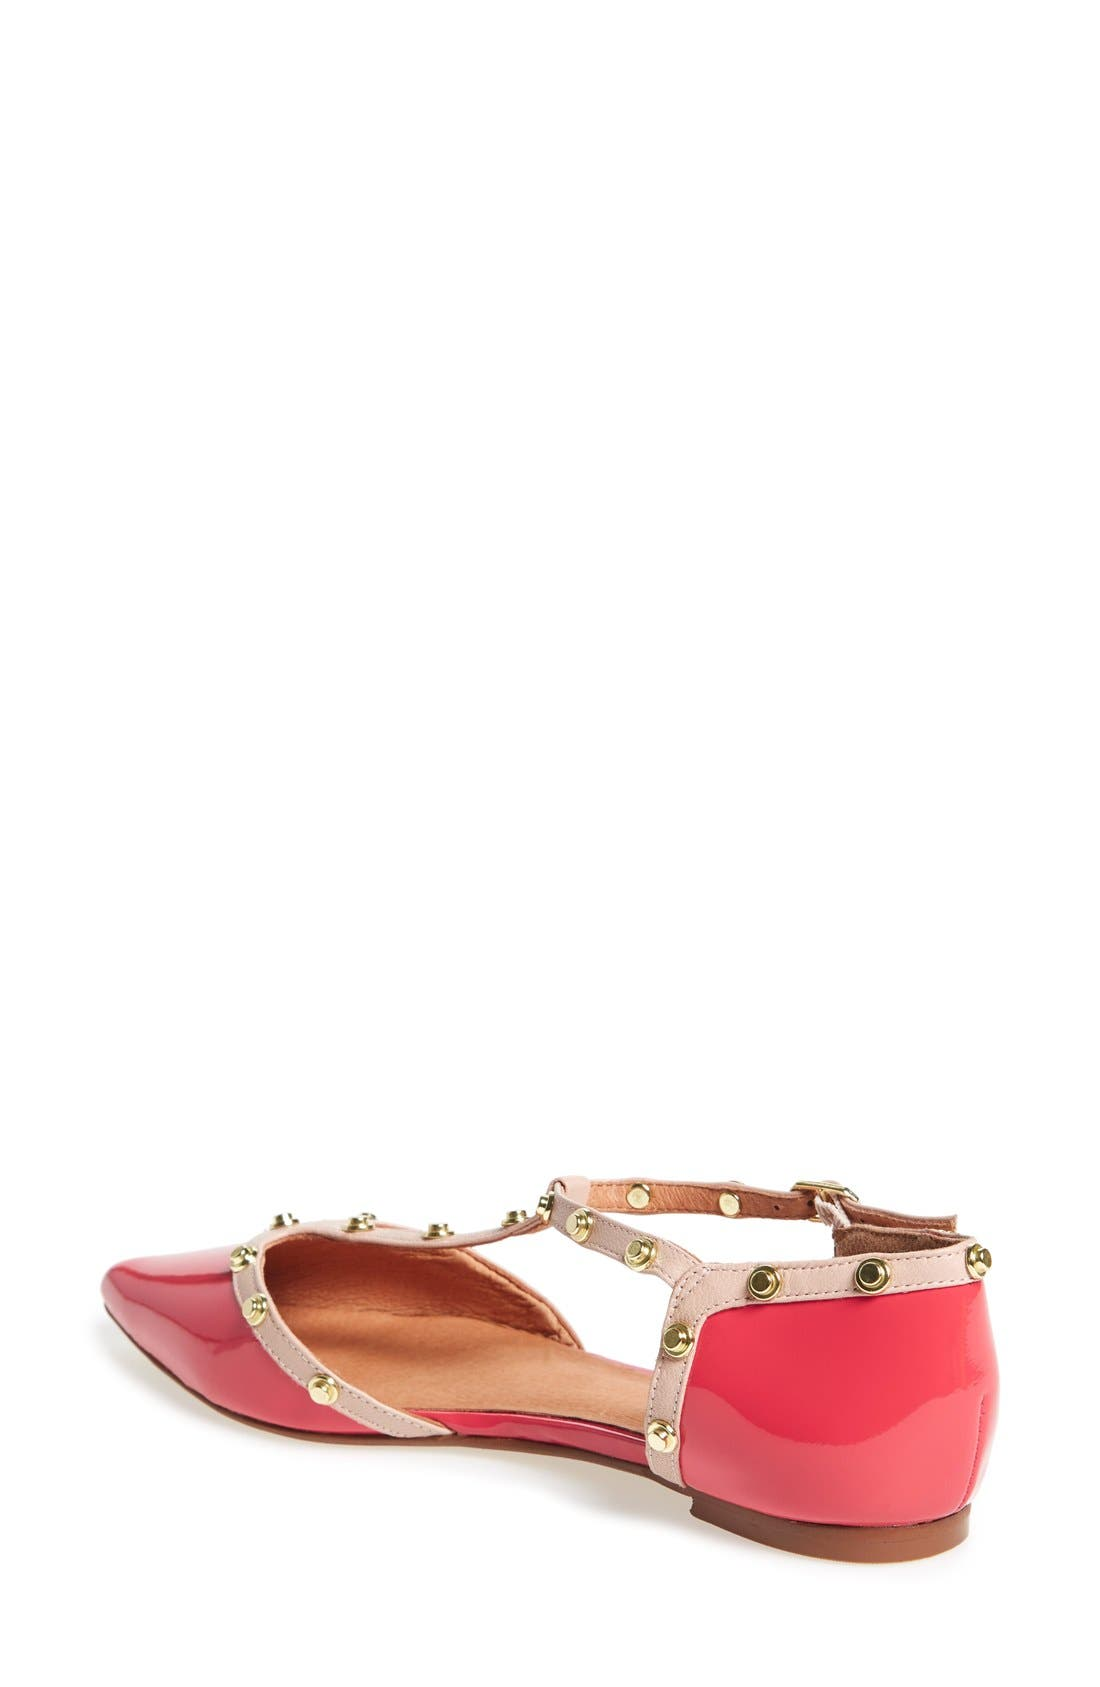 ,                             'Olson' Pointy Toe Studded T-Strap Flat,                             Alternate thumbnail 100, color,                             951